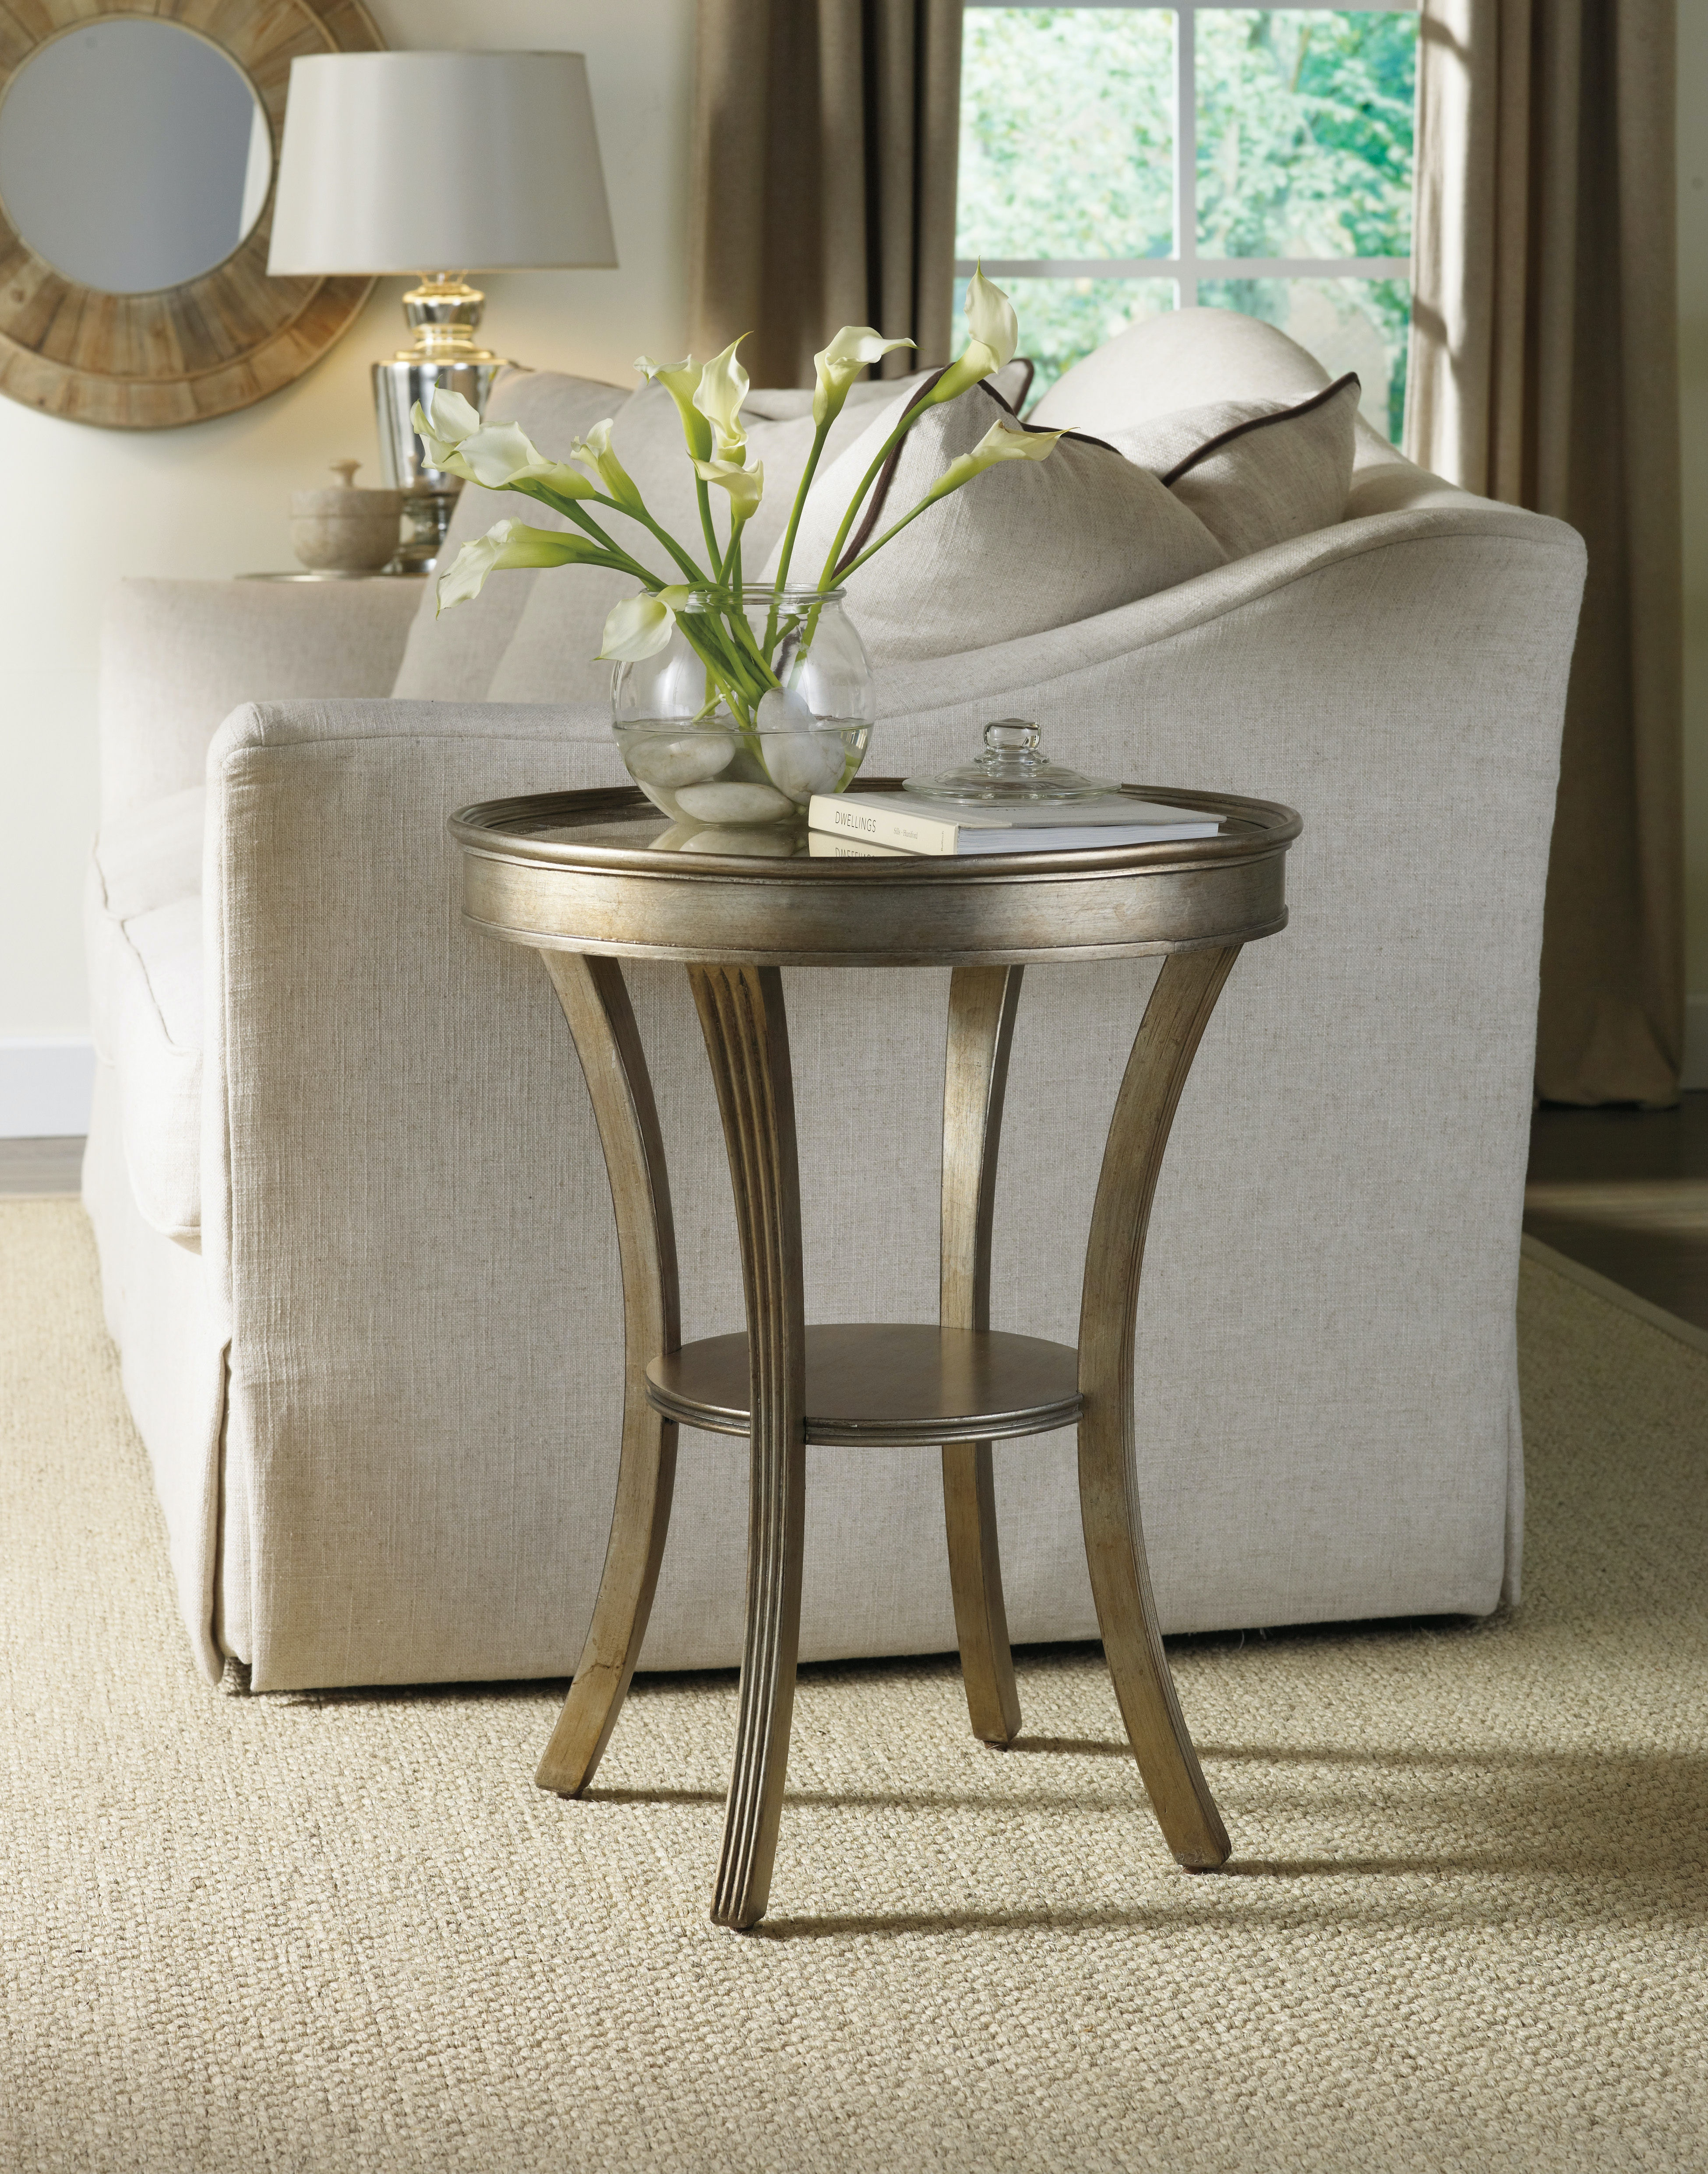 Great Hooker Furniture Sanctuary Round Mirrored Accent Table   Visage 3014 50001